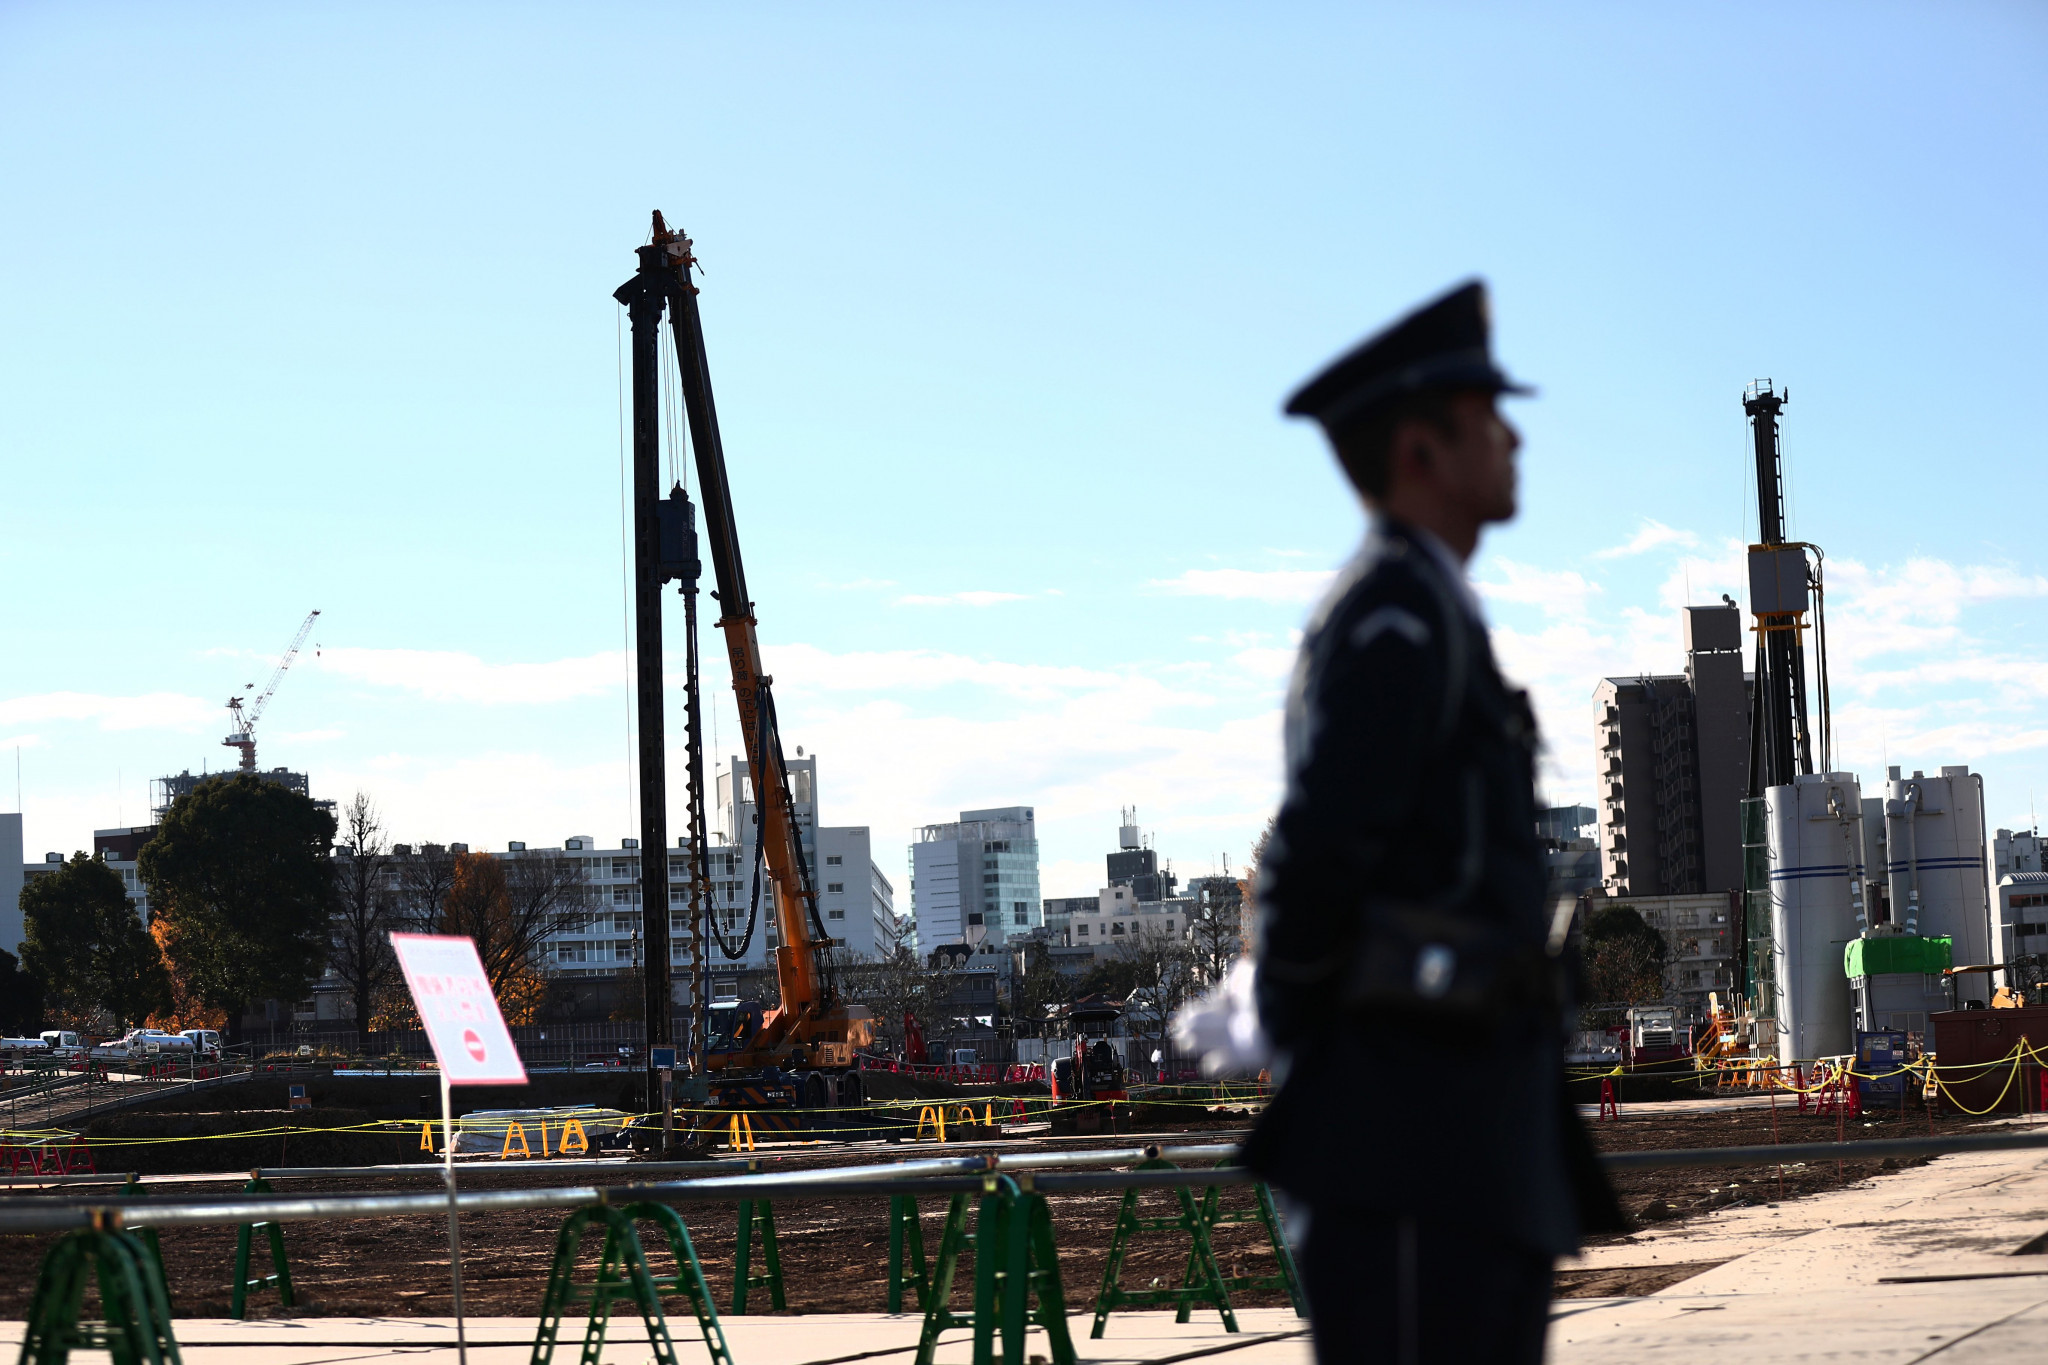 A security guard at the Tokyo Olympic Stadium construction site